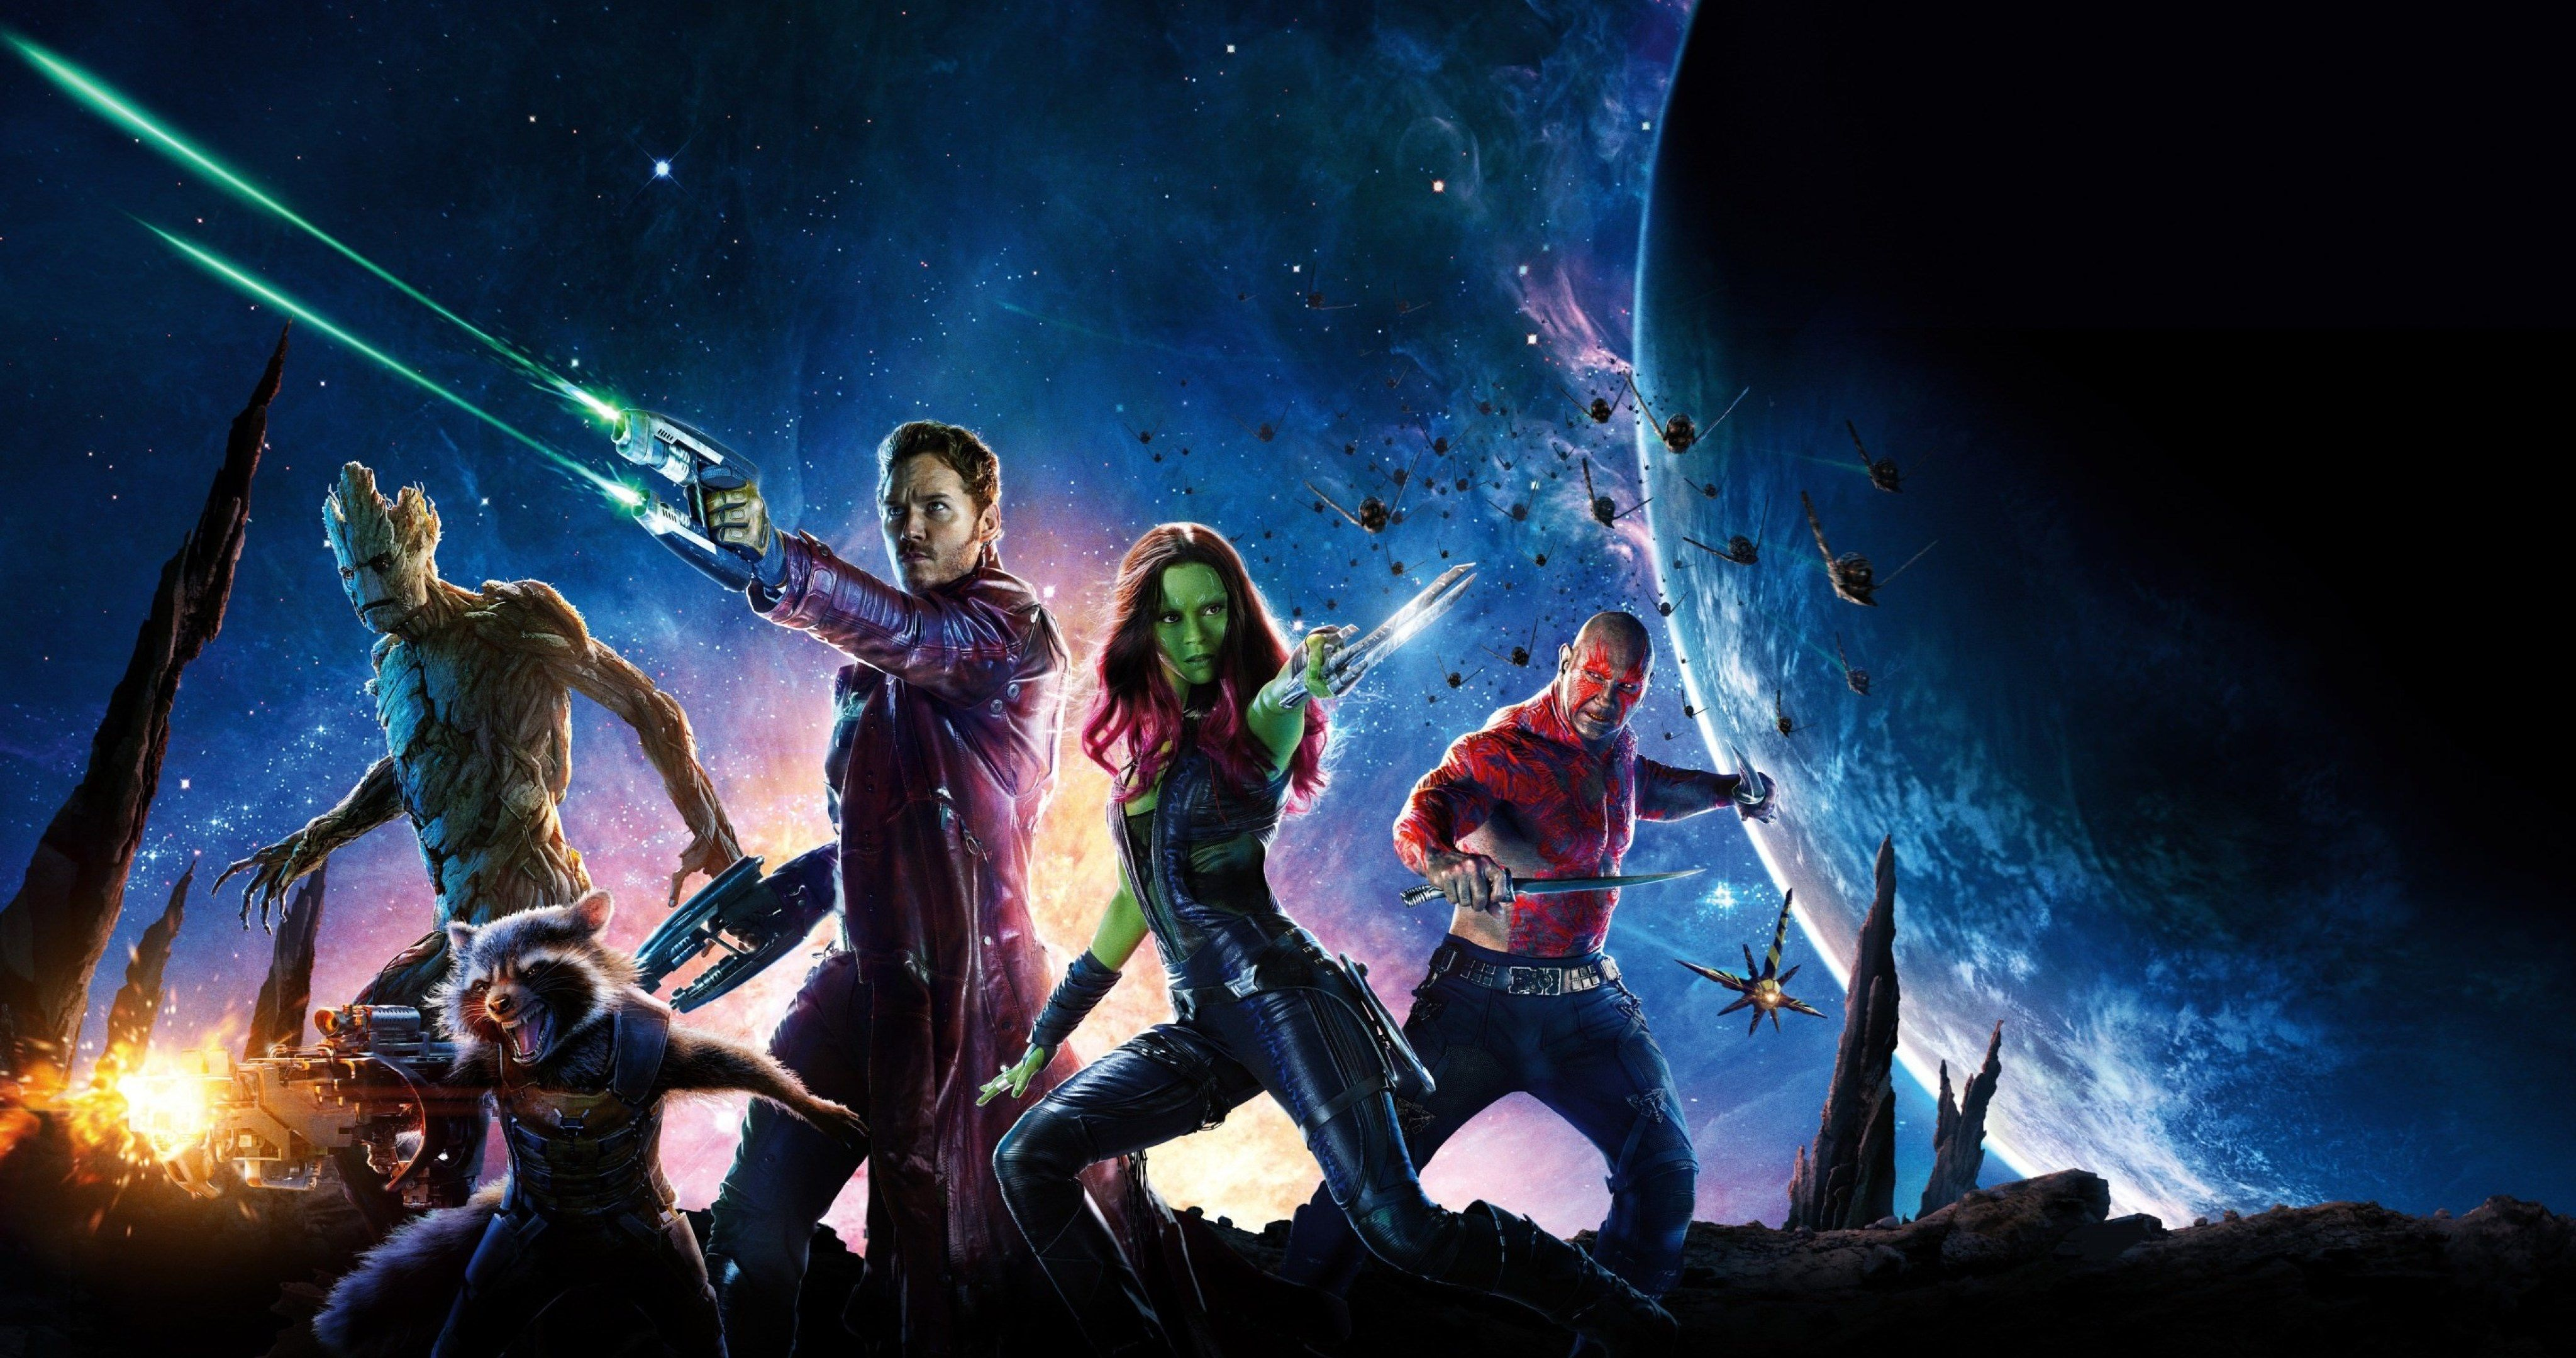 Guardians Of The Galaxy Wallpaper 4k , HD Wallpaper & Backgrounds